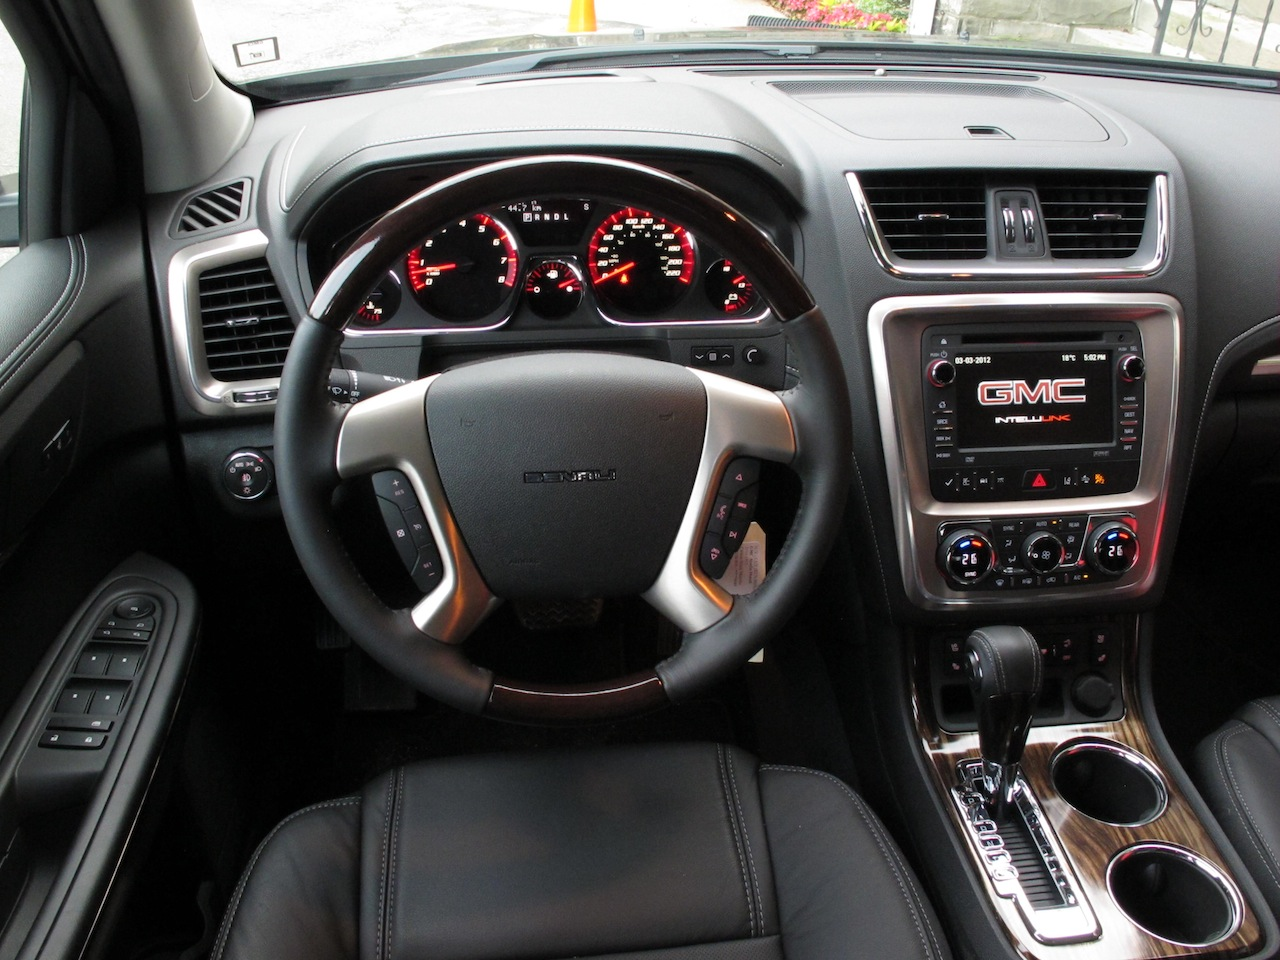 2014 Gmc Acadia Denali Cars Photos Test Drives And Reviews Canadian Auto Review